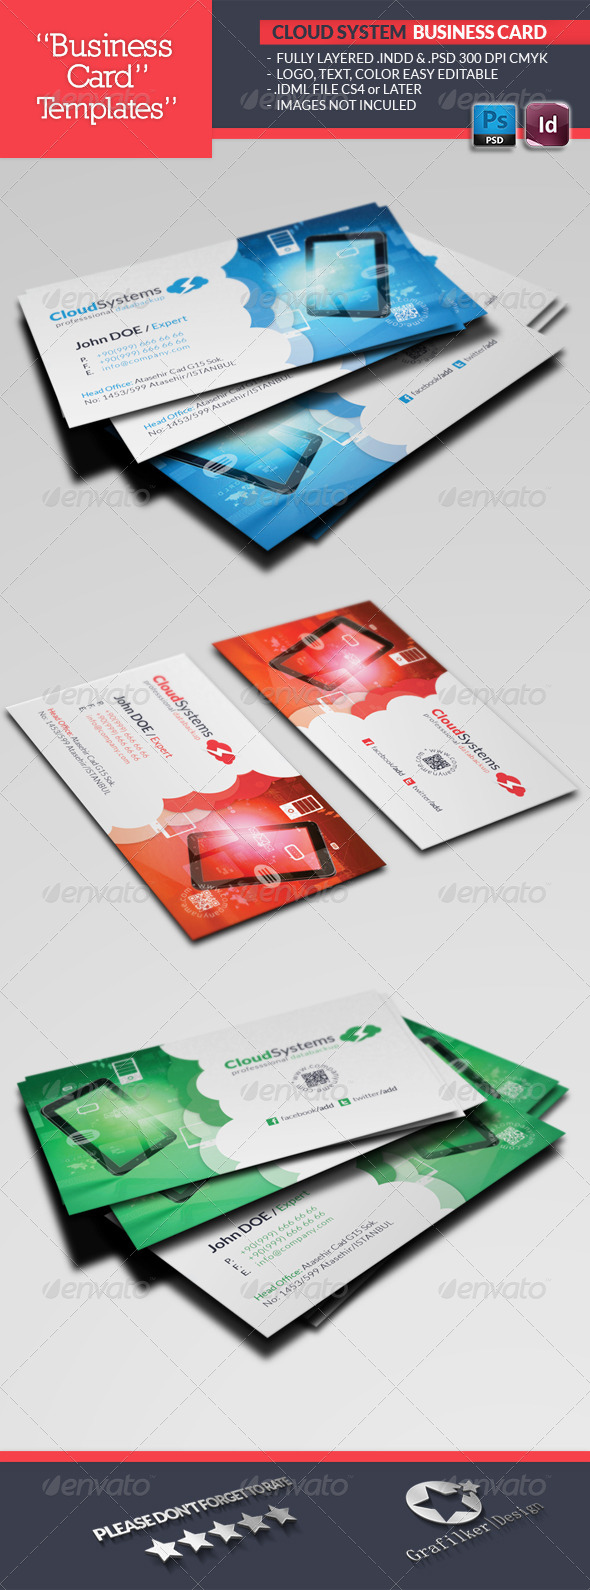 Cloud Systems Business Card Template - Industry Specific Business Cards